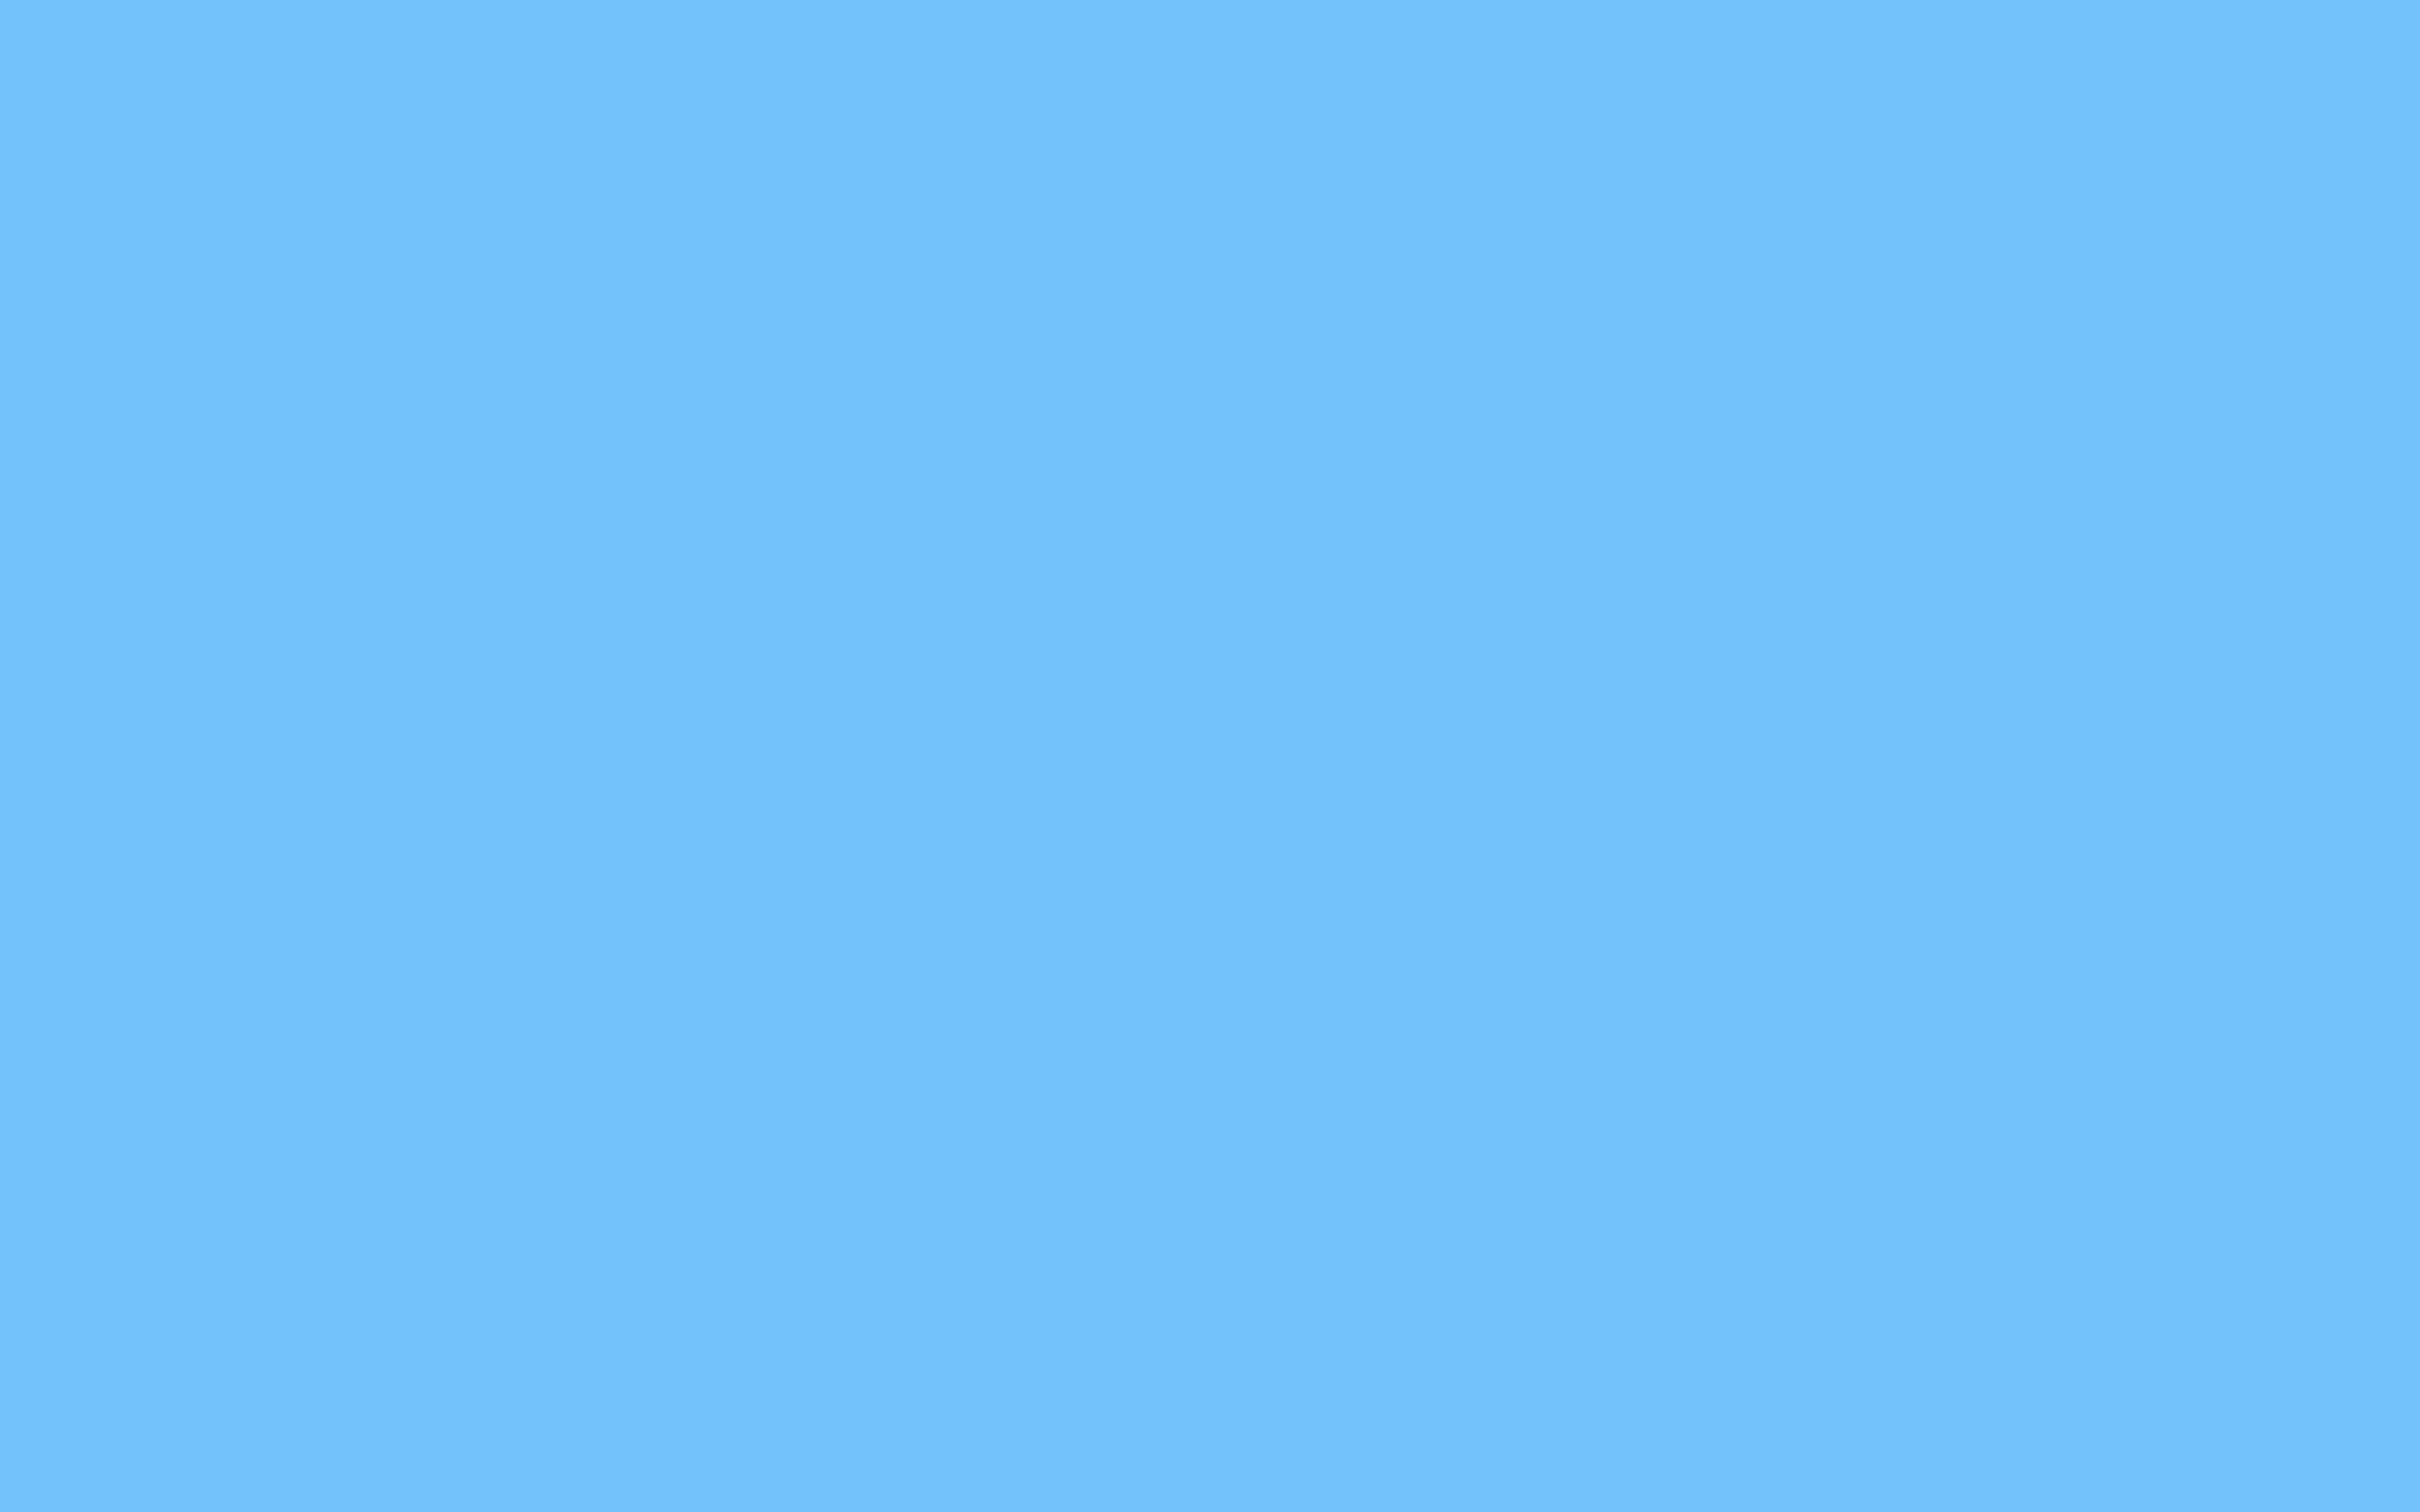 2560x1600 Maya Blue Solid Color Background